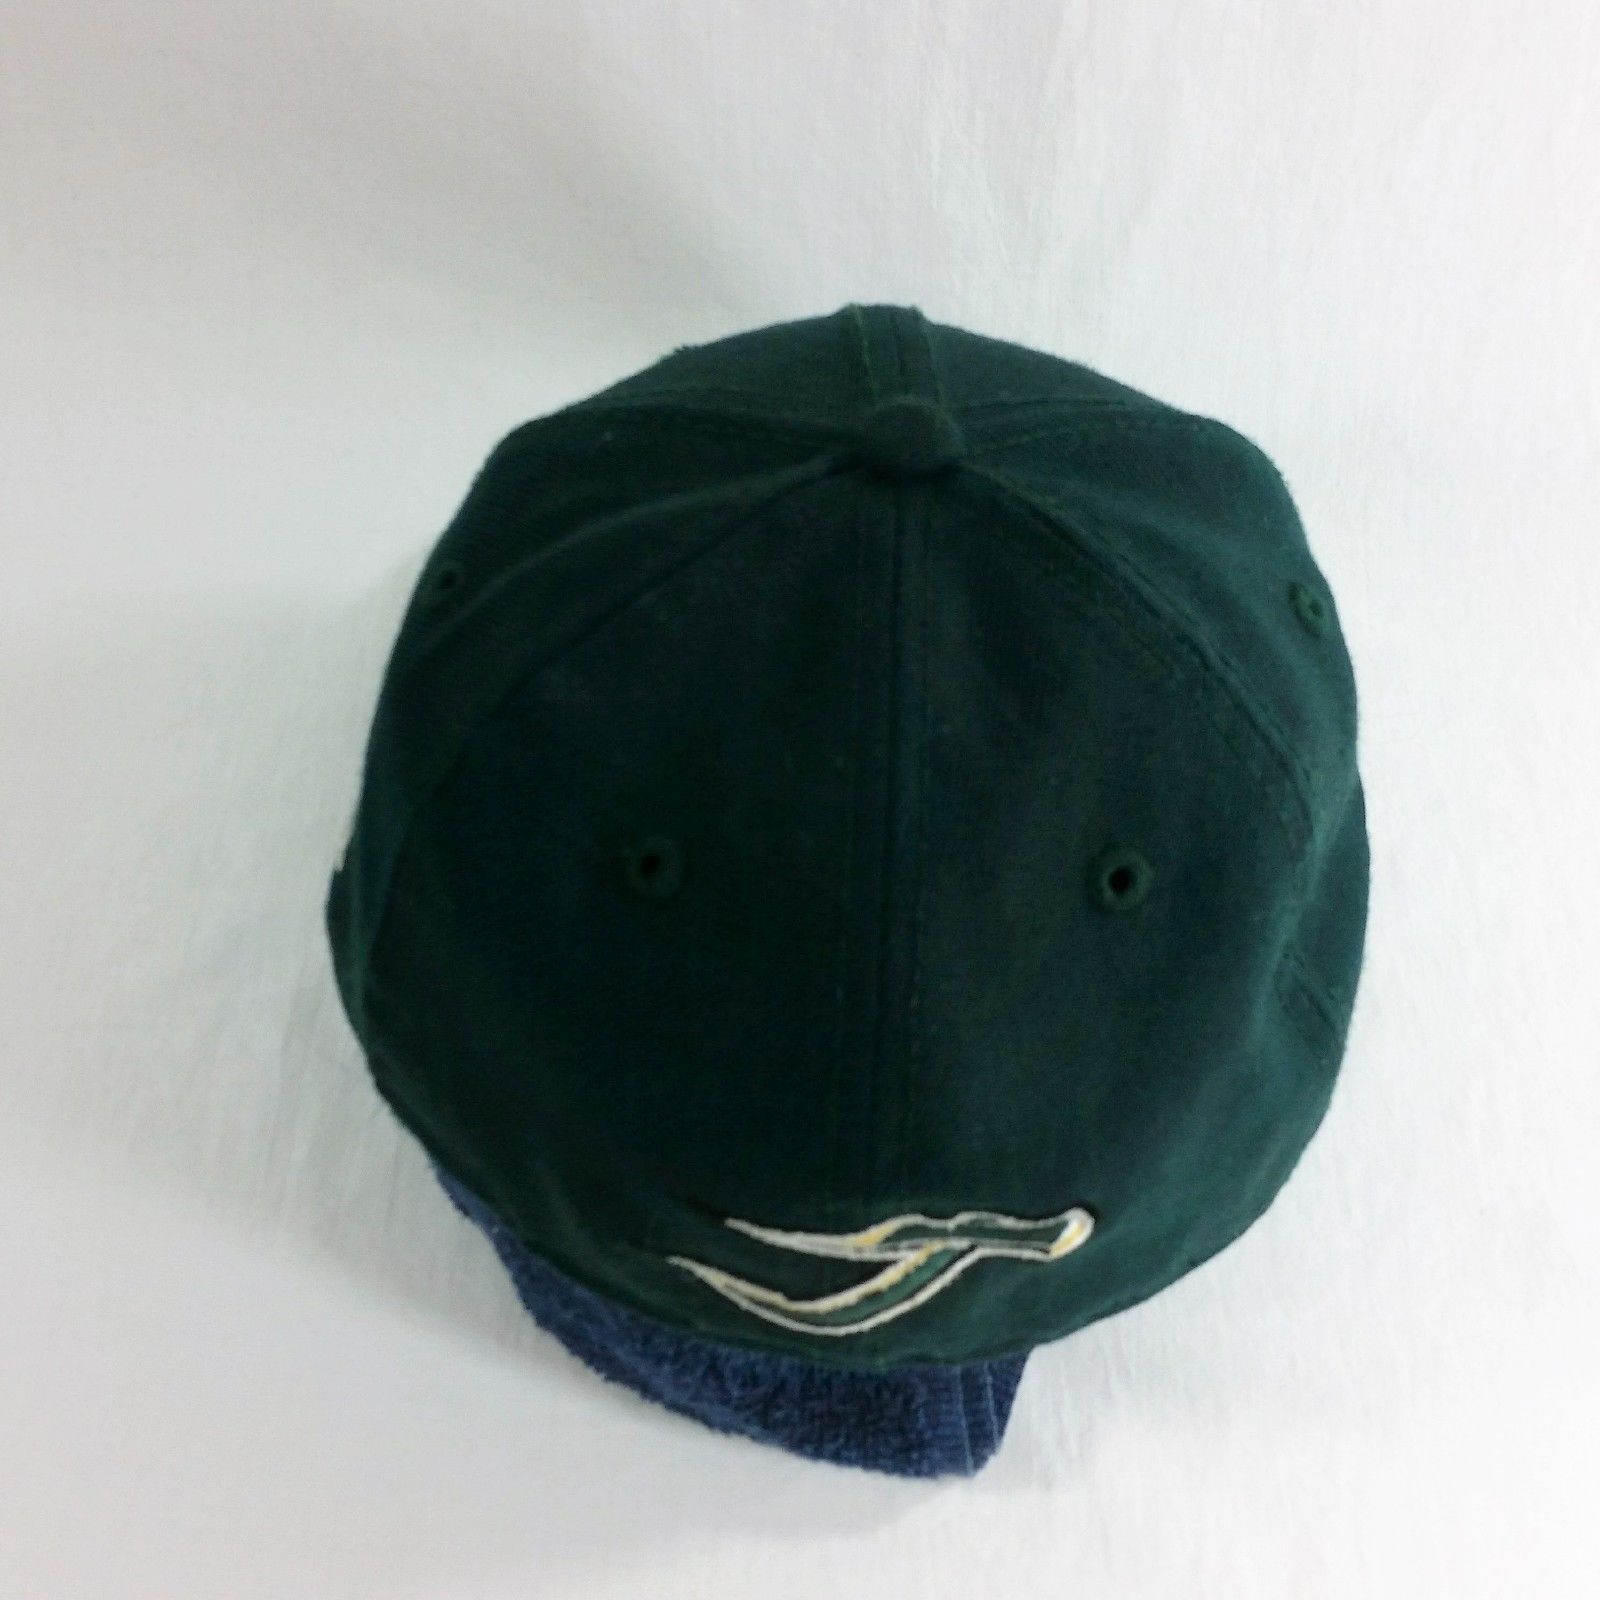 Humboldt State Lumberjacks HSU Fitted Cap Hat New Era 6 5/8 Jacks Wool 5950 image 6